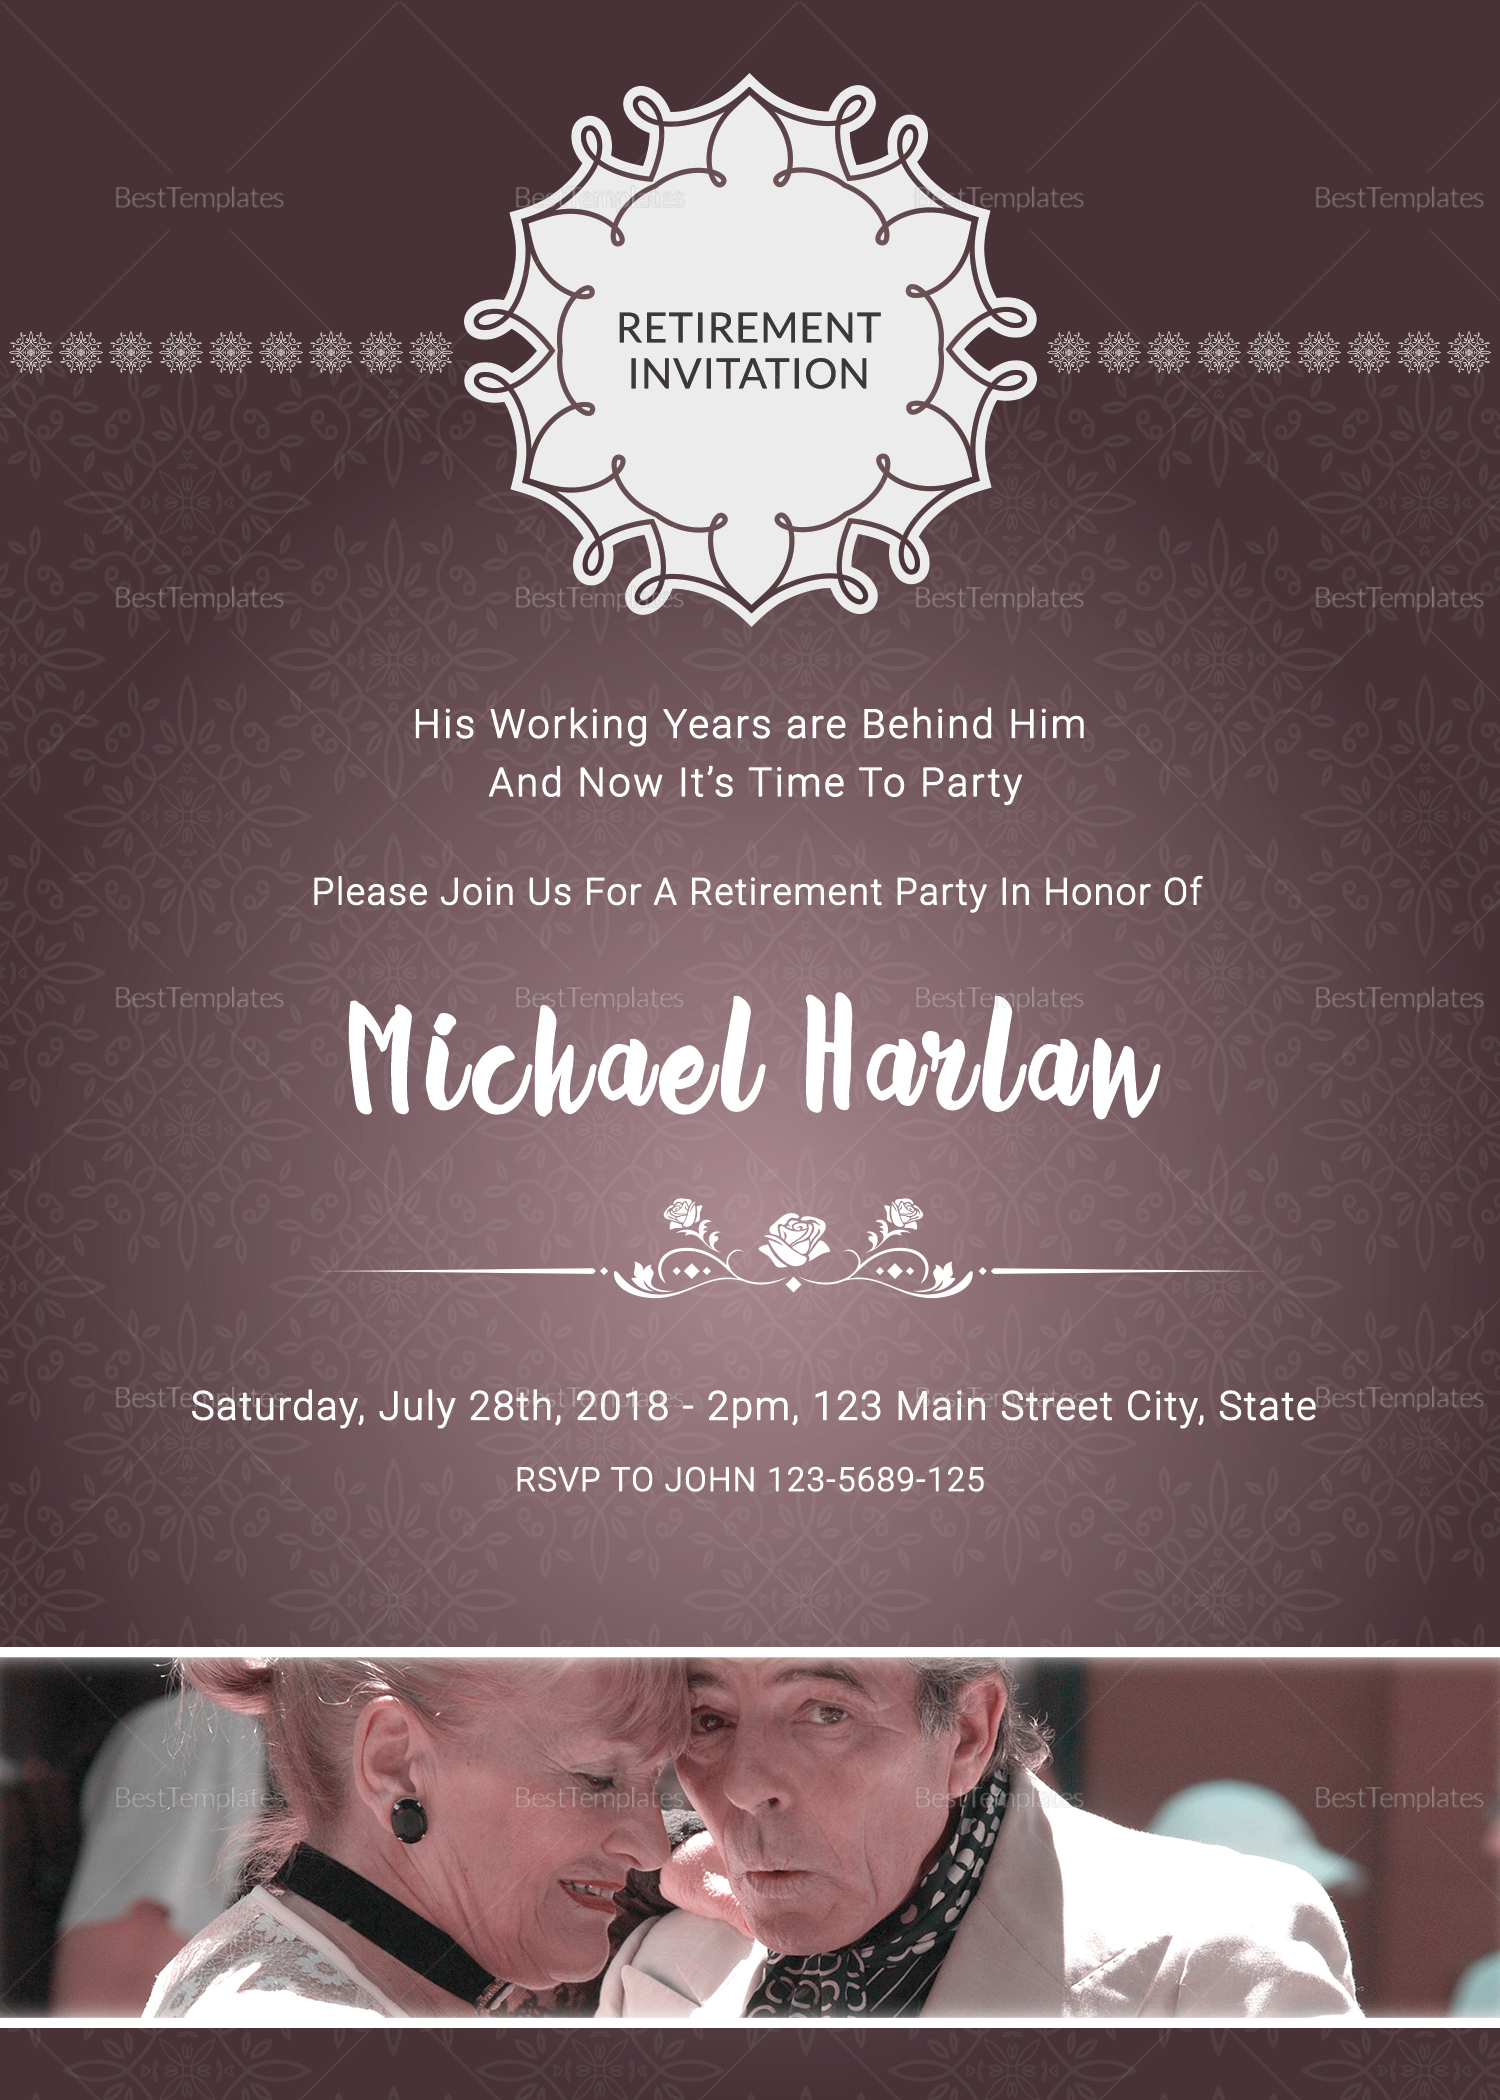 Delighted Retirement Party Invitation Card Design Template in PSD ...